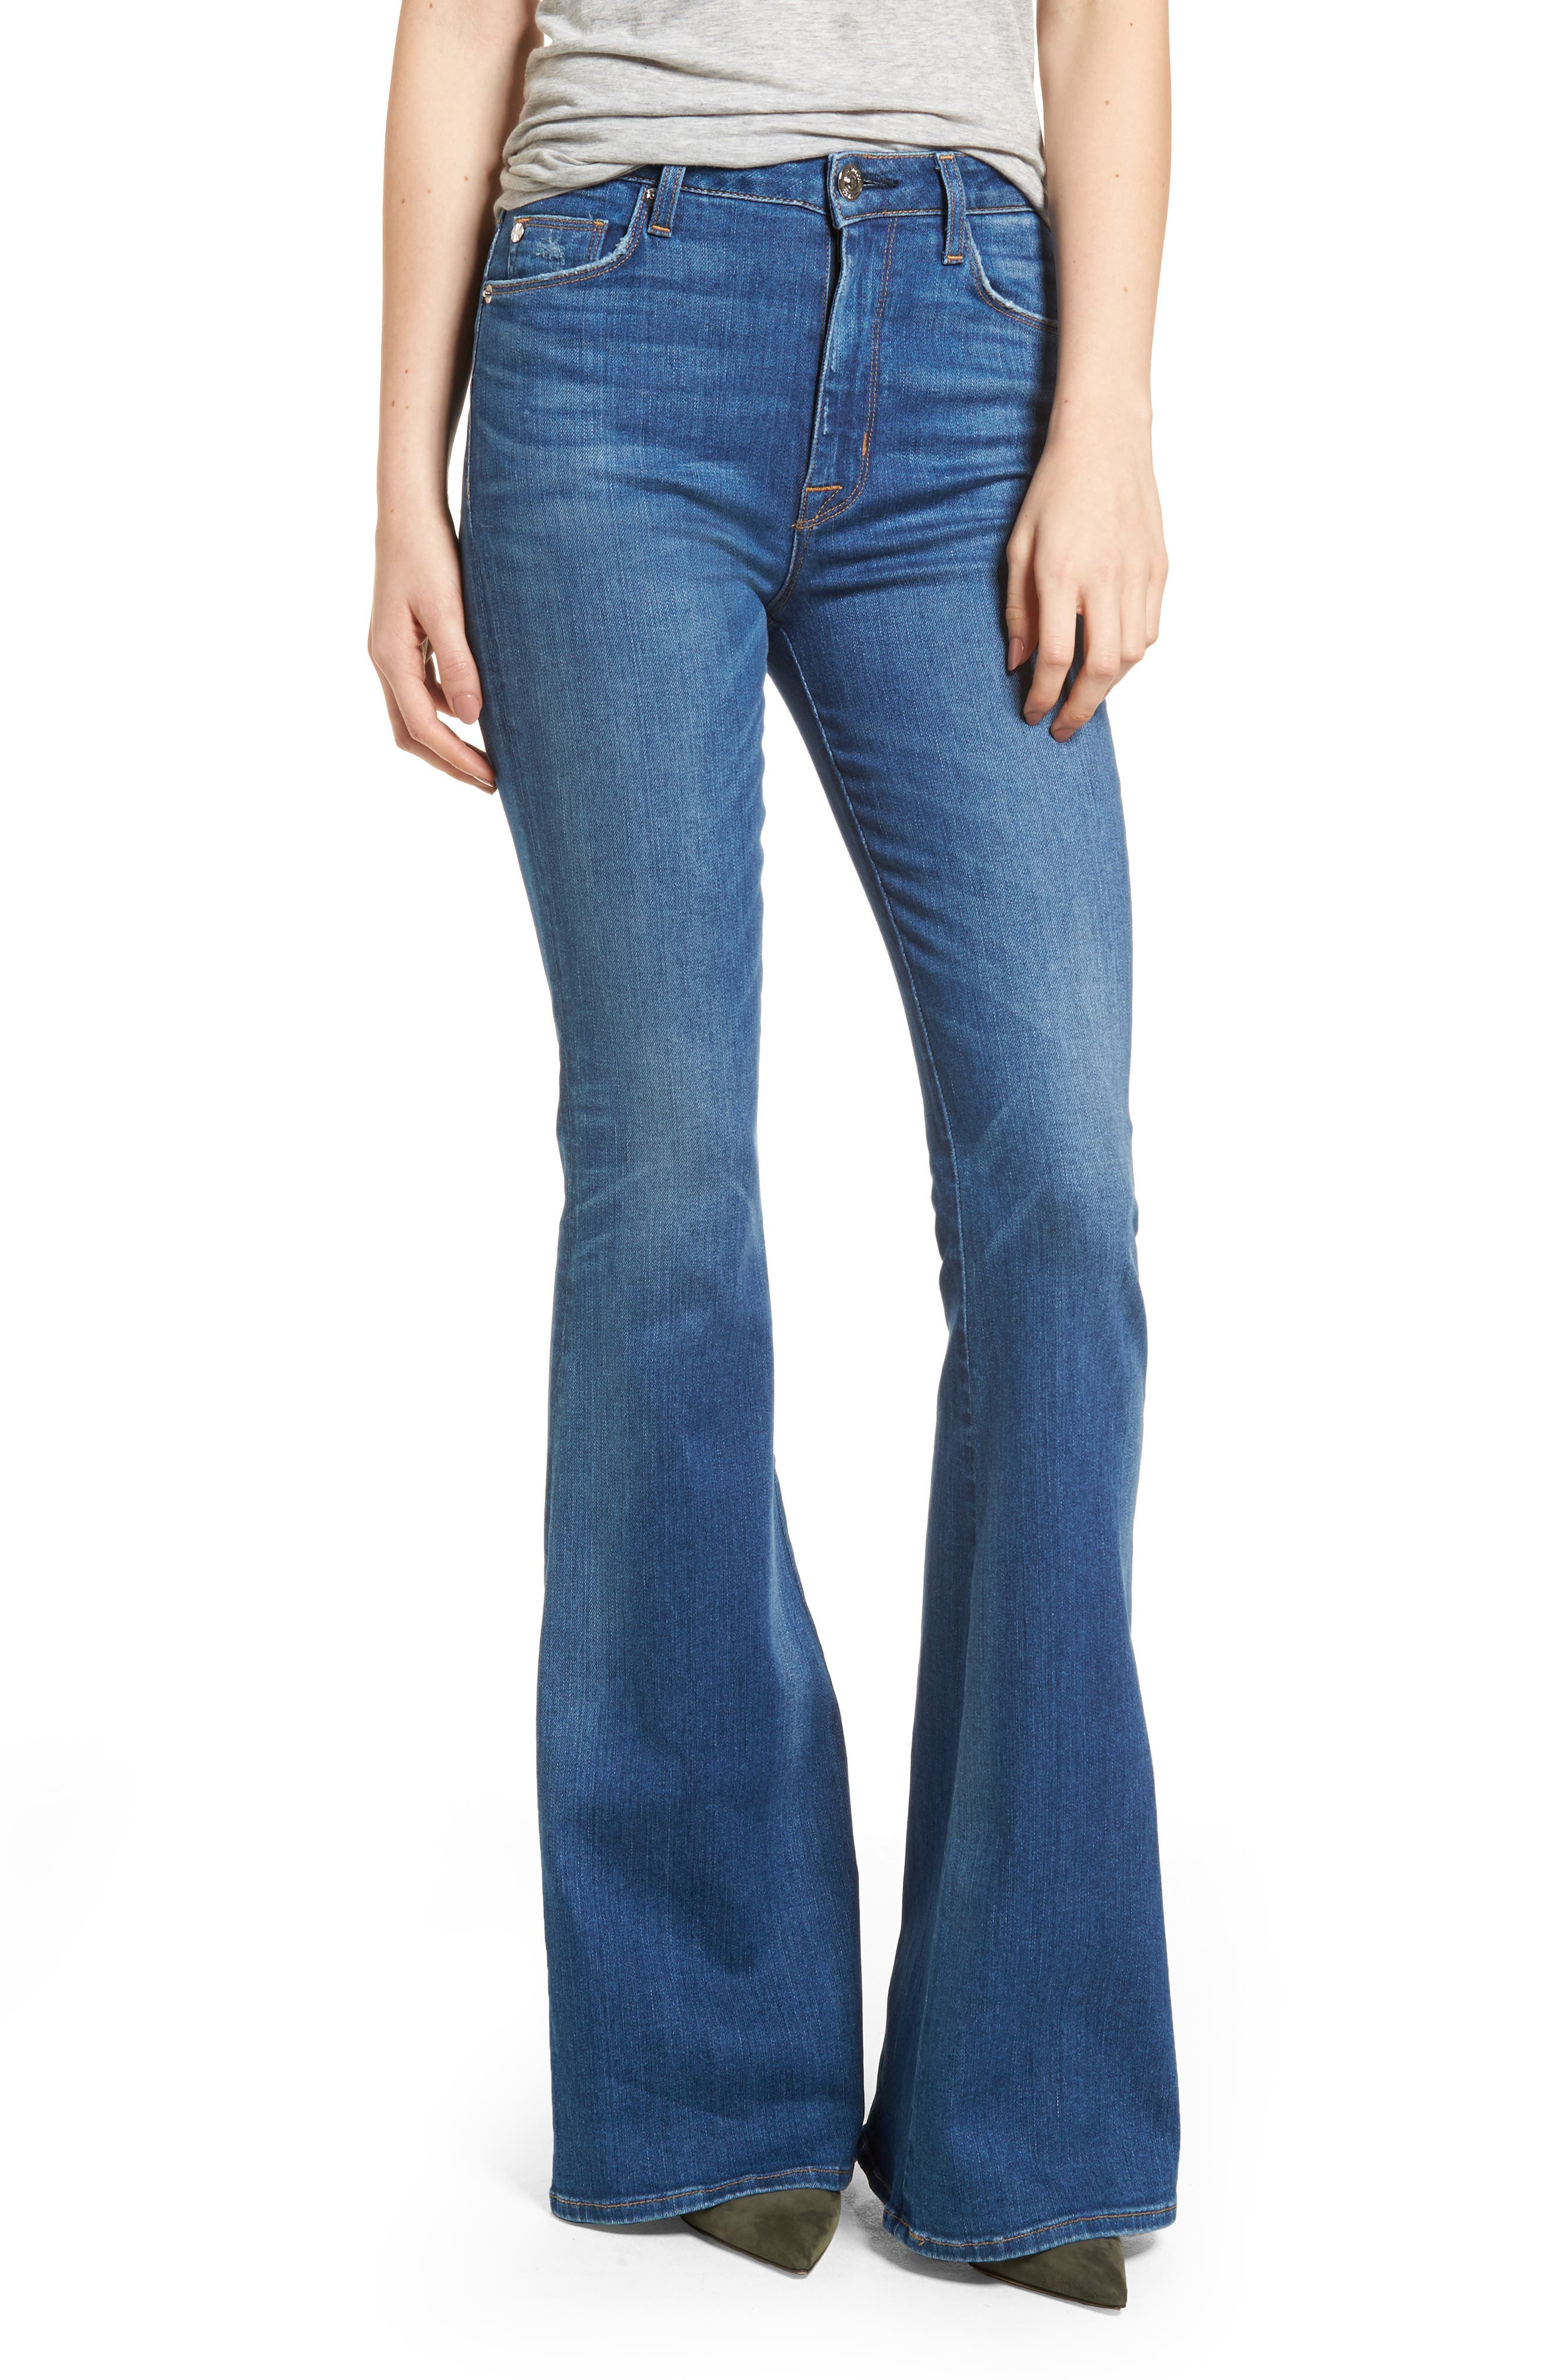 Holly High Waist Flare Jeans,                             Main thumbnail 1, color,                             401